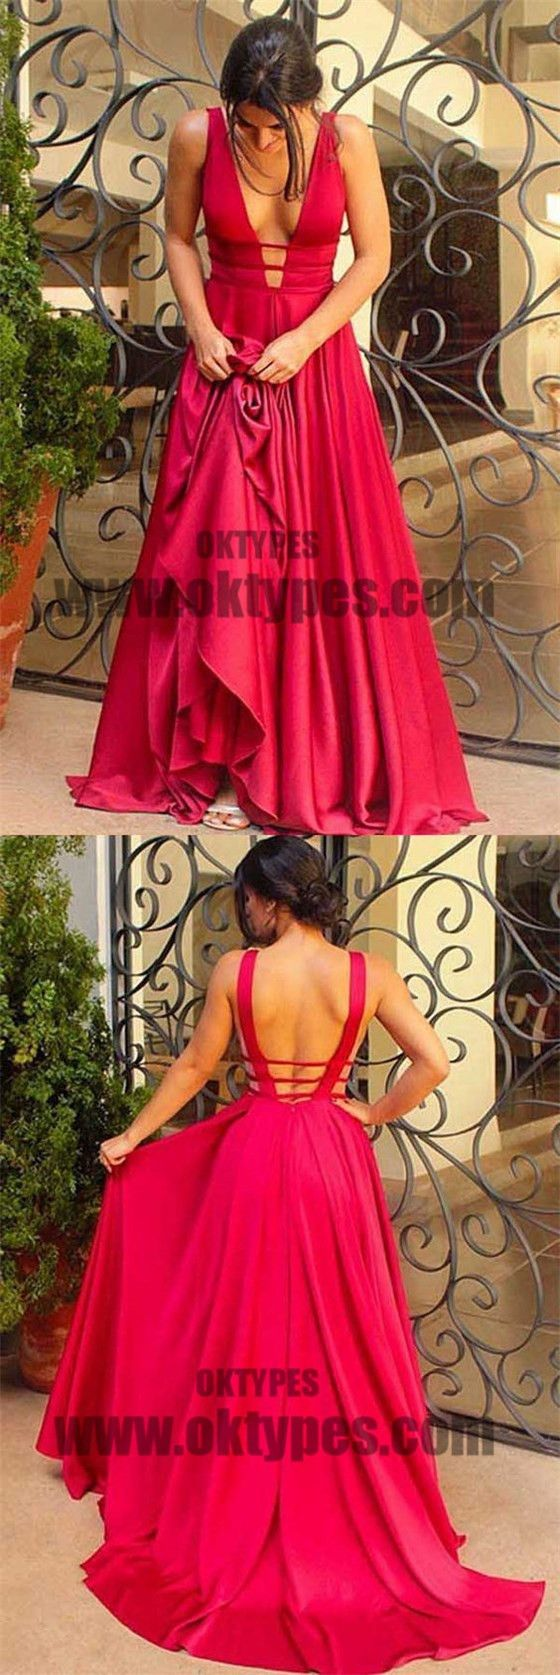 Red spaghetti strap vneck backless prom dresses long mermaid soft